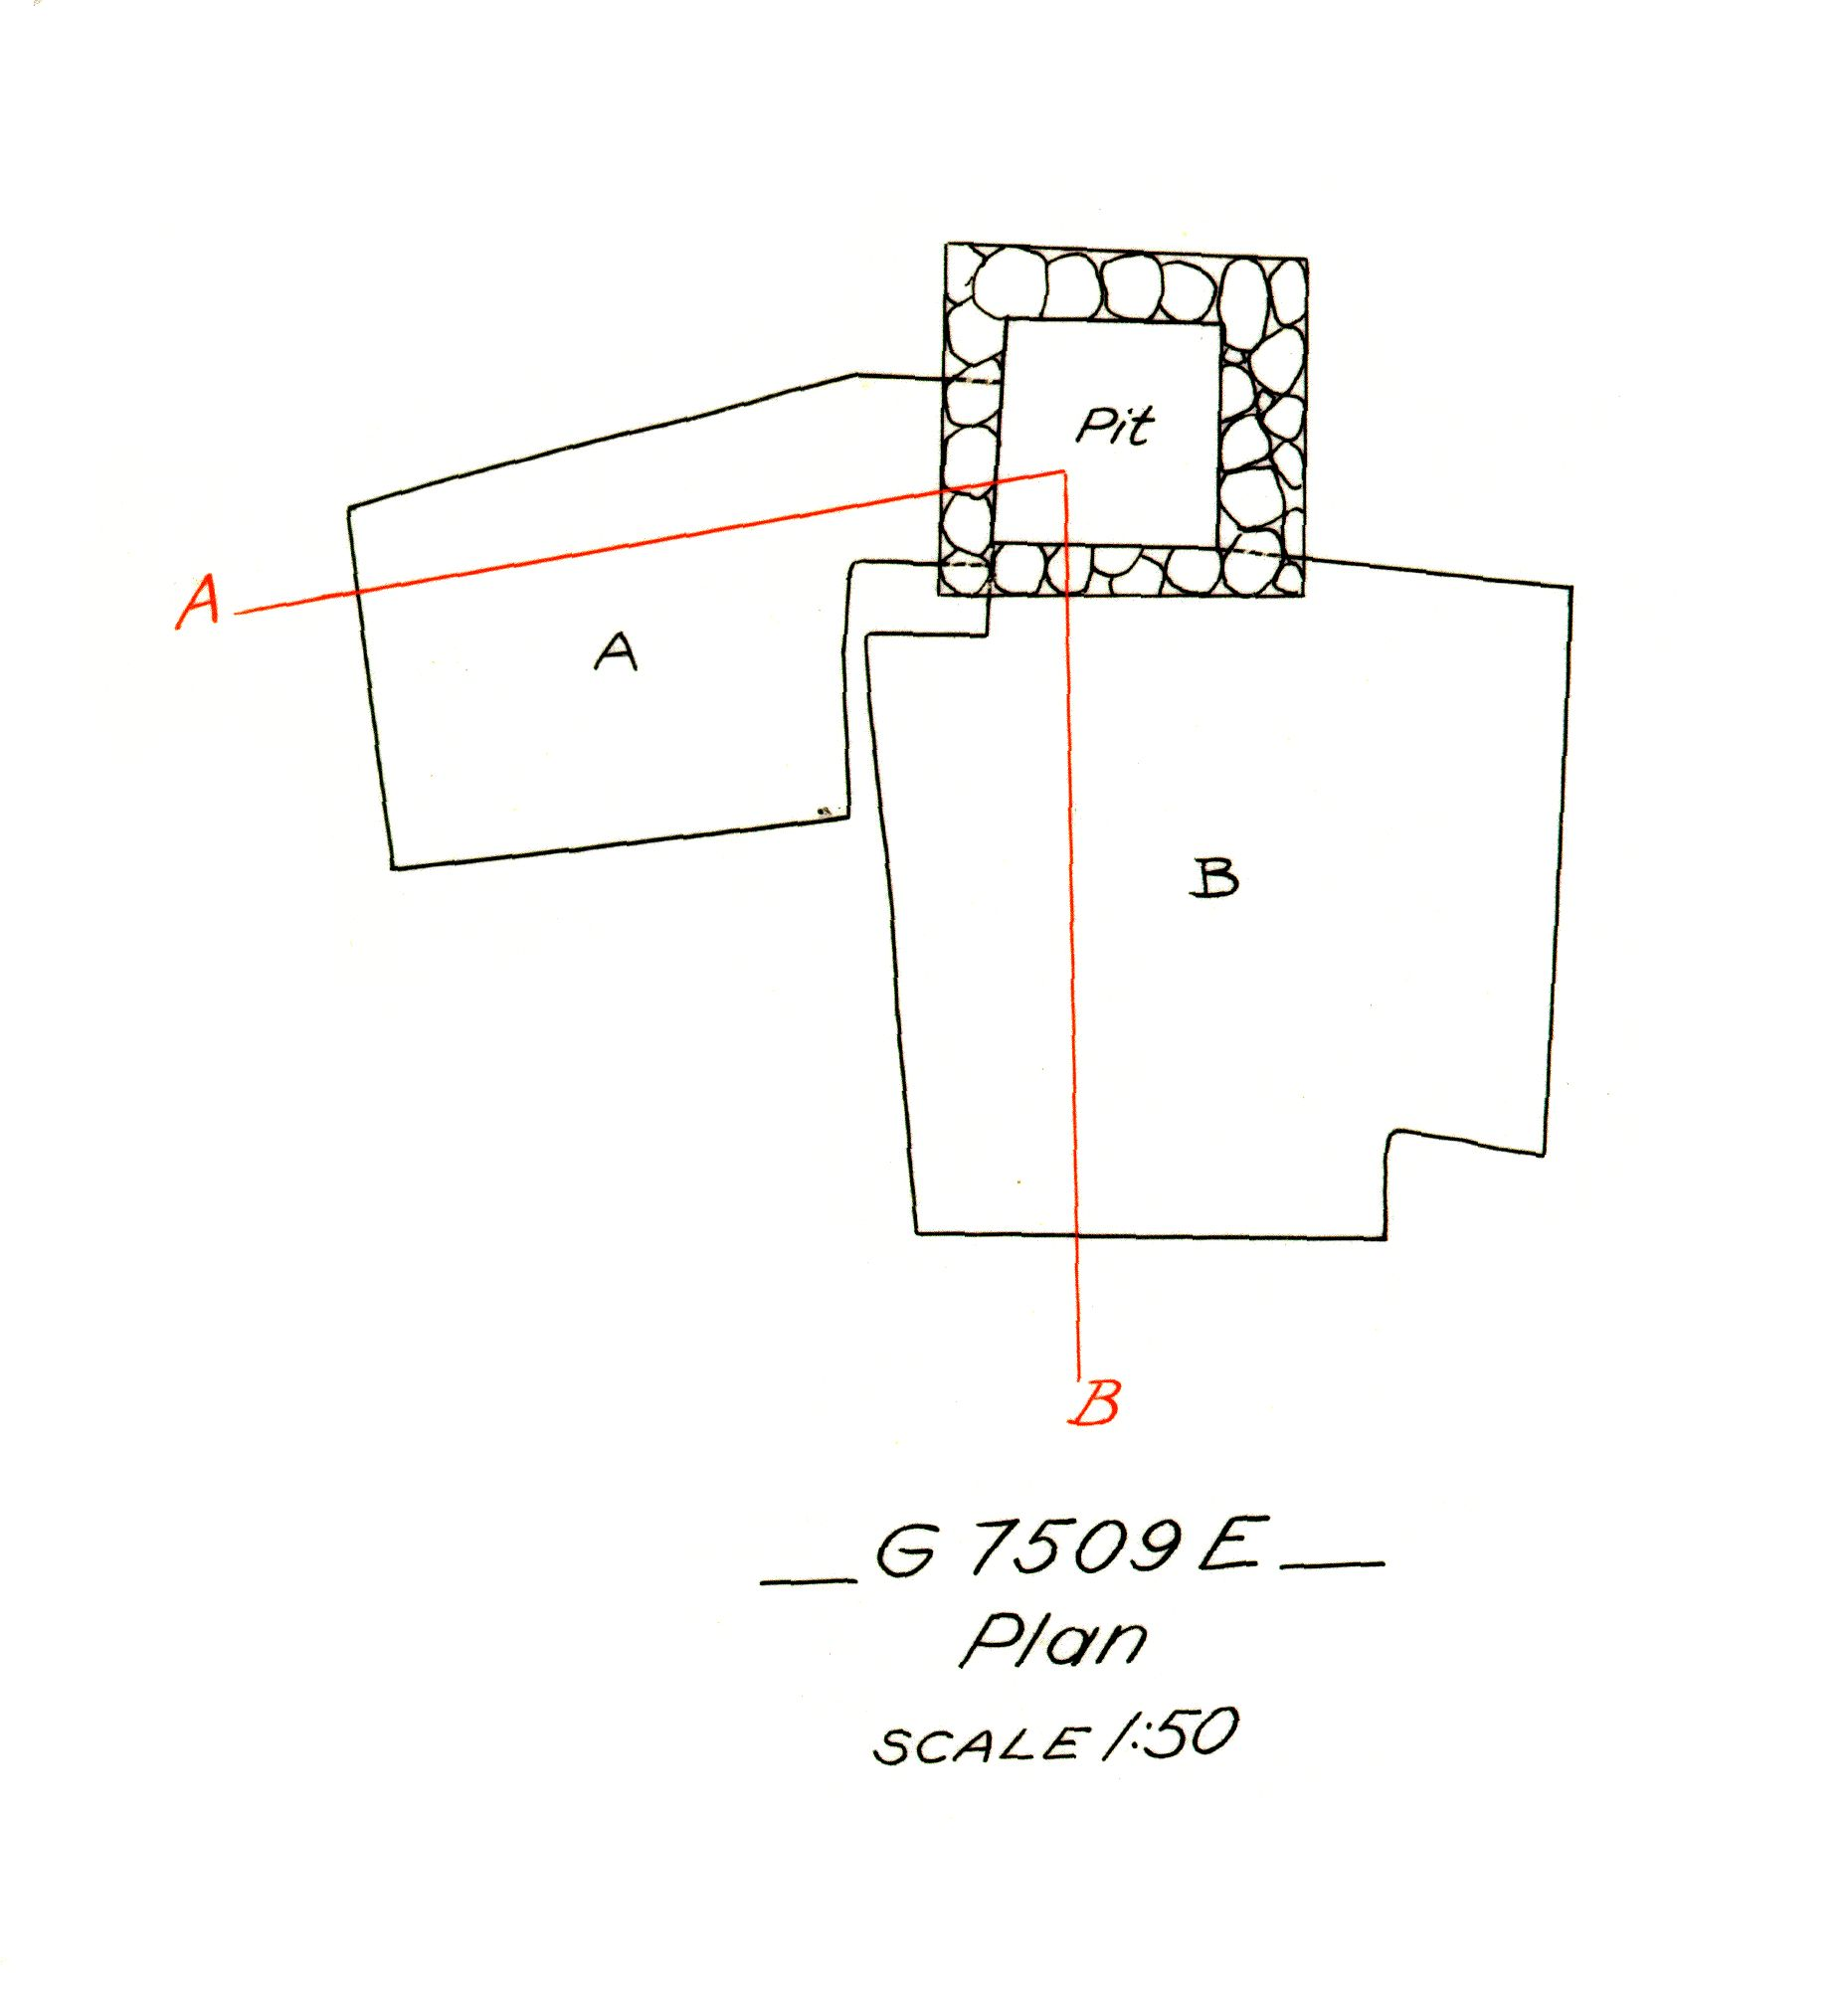 Maps and plans: G 7509, Shaft E